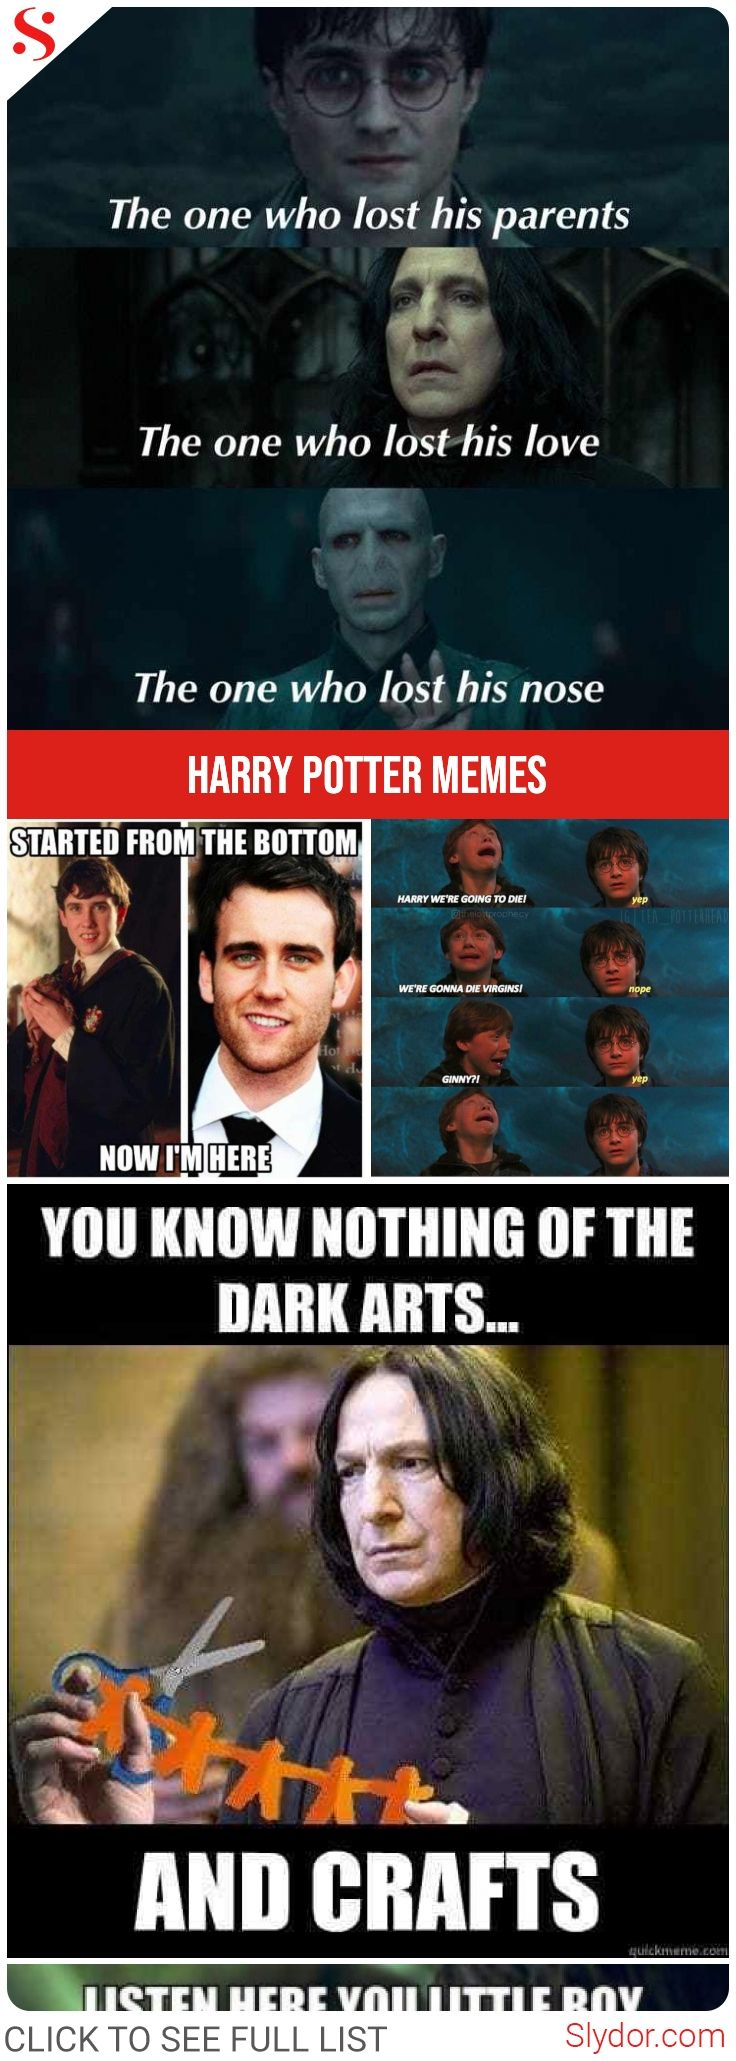 Harry Potter Memes – Only A True Potterhead Can Understand